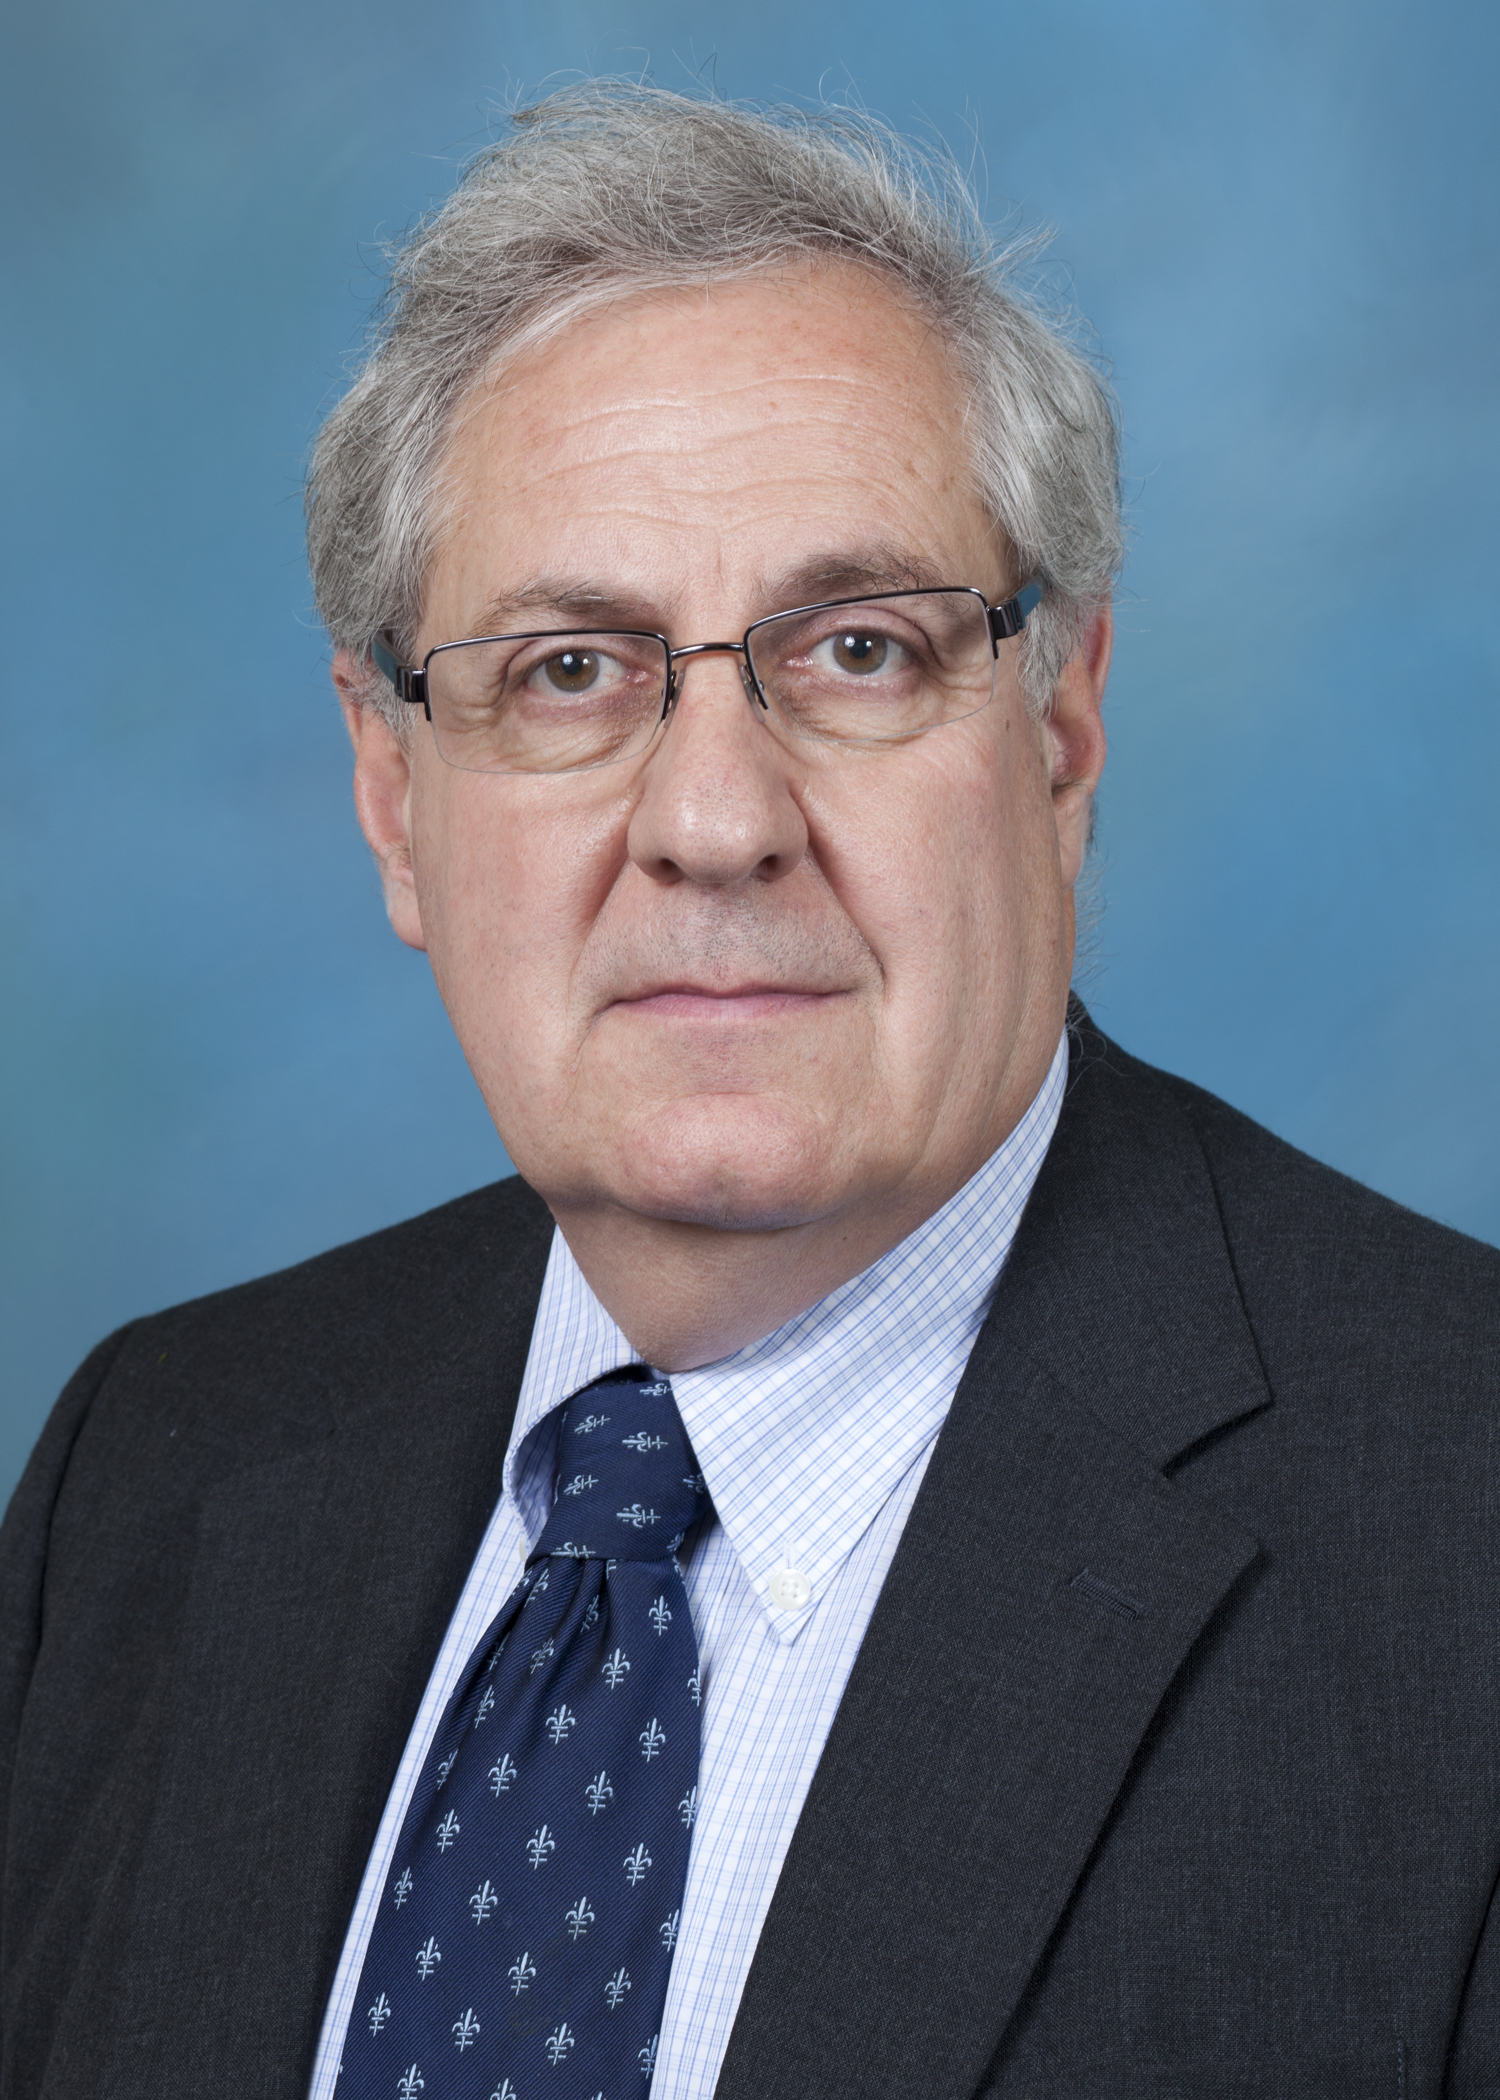 Sinai Hospital of Baltimore endocrinologist, Henry G. Fein, M.D.